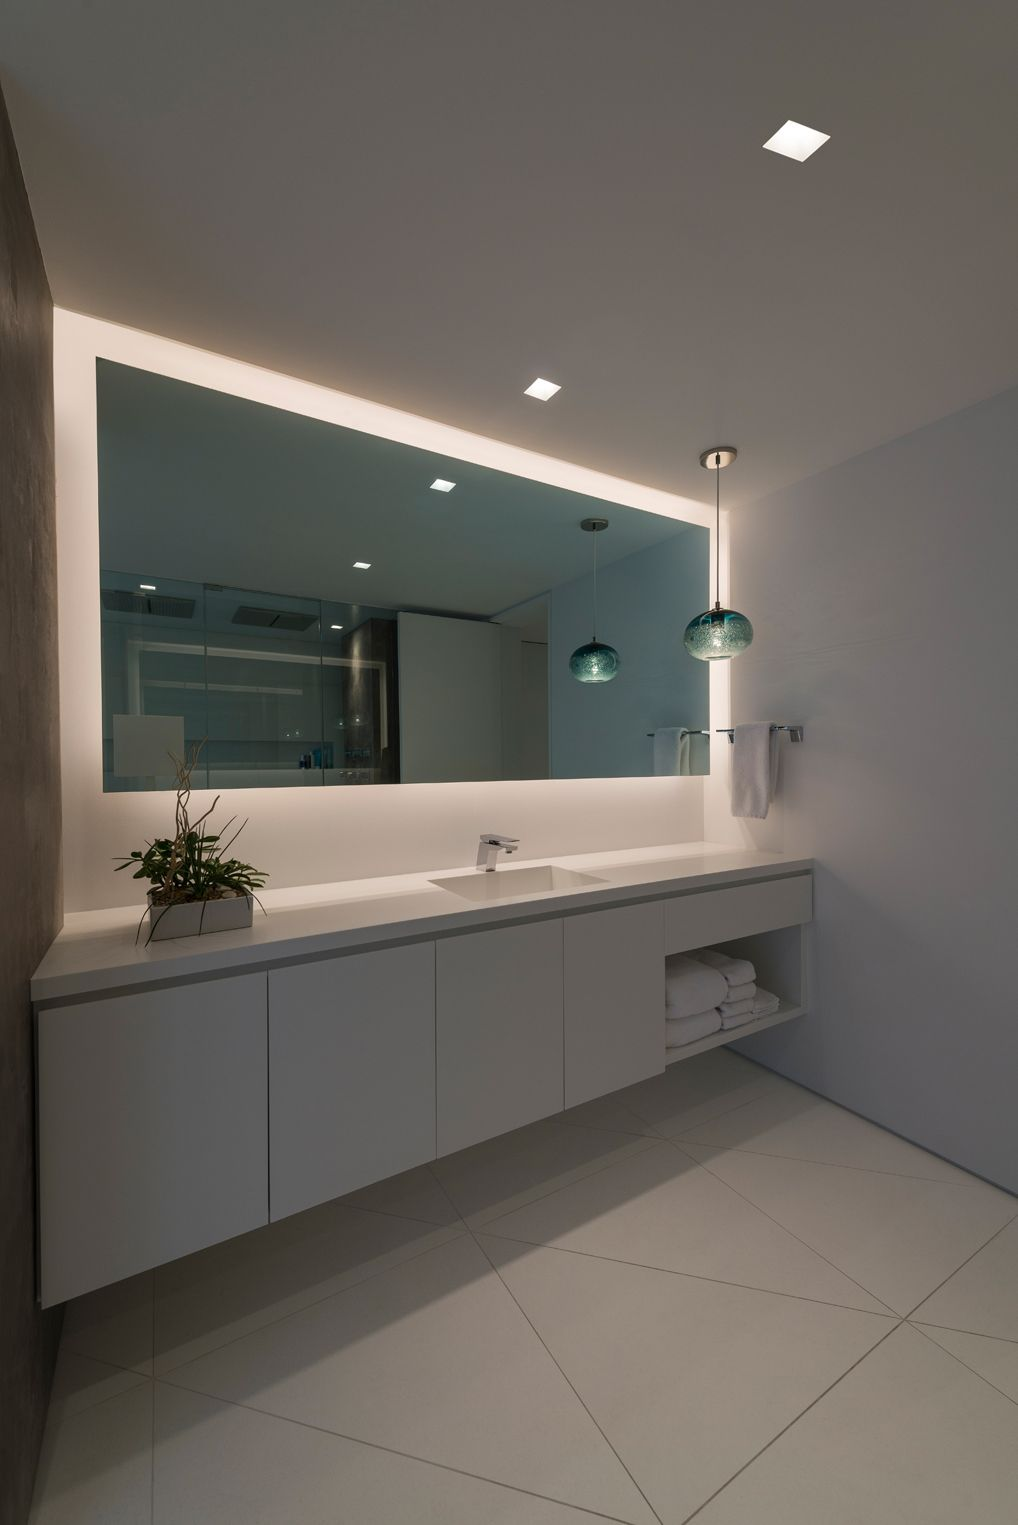 The Truly Trimless Appearance Of Recessed Square Leds Allow For A Serene Environment While Adding To T Modern Bathroom Mirrors Stylish Bathroom Modern Bathroom